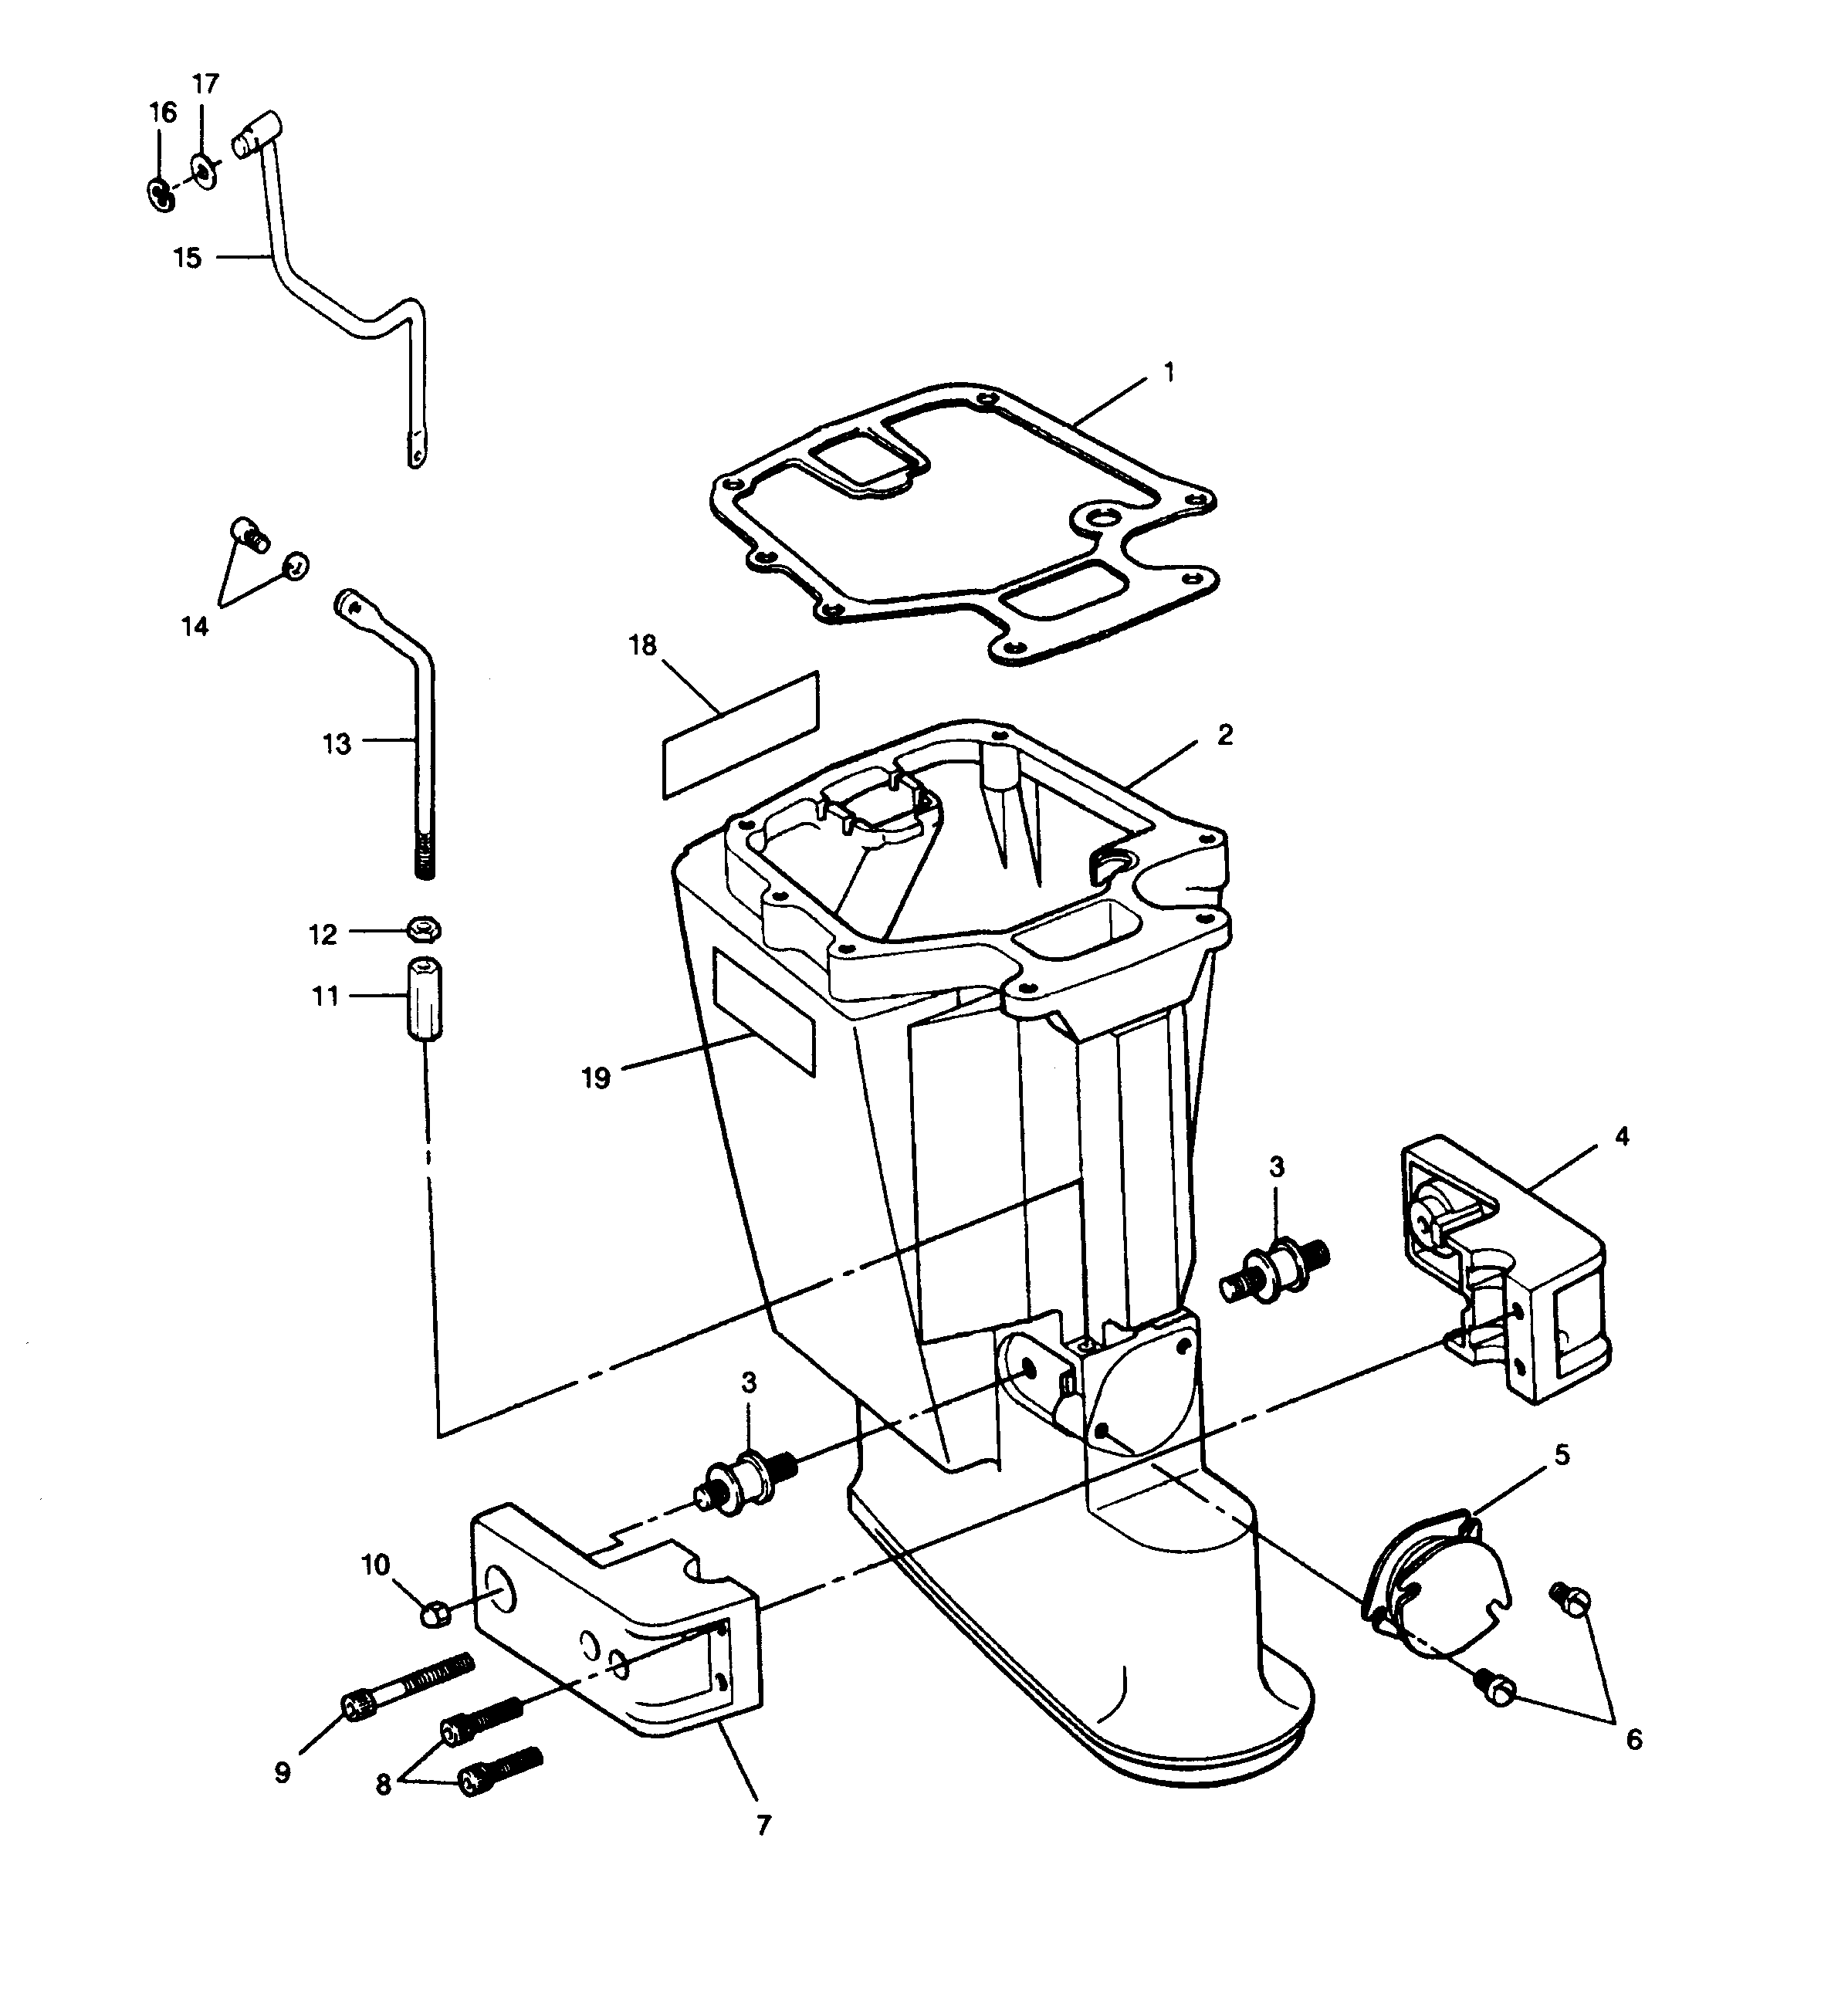 35 Hp Mercury Outboard Fuel System Diagram Schematic Diagrams Motor Wiring Force H P 1991 353f91a Leg 80